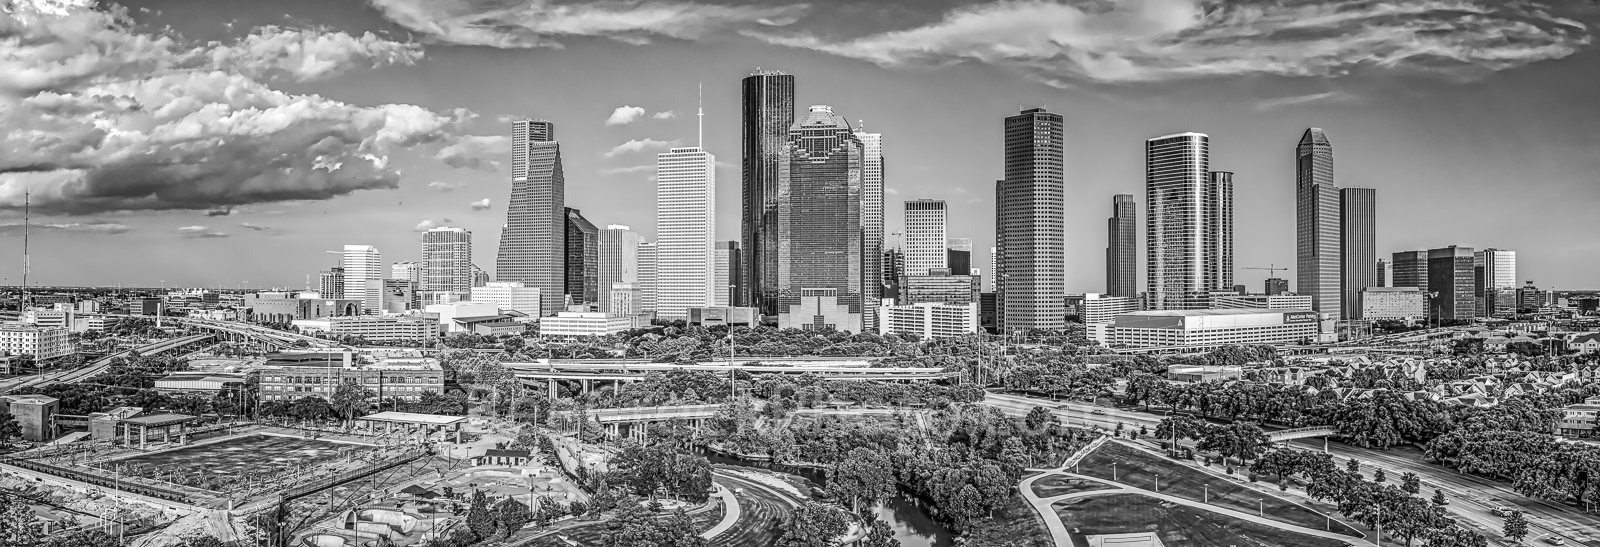 Houston skyline, Houston Skyline Aerial BW Pano, black and white, bw, skyline, cityscape, pano, panorama, cityscapes, city, park, skylines, downtown, skyscrapers, bayou, green, Eleanor tinsley Park, J, photo